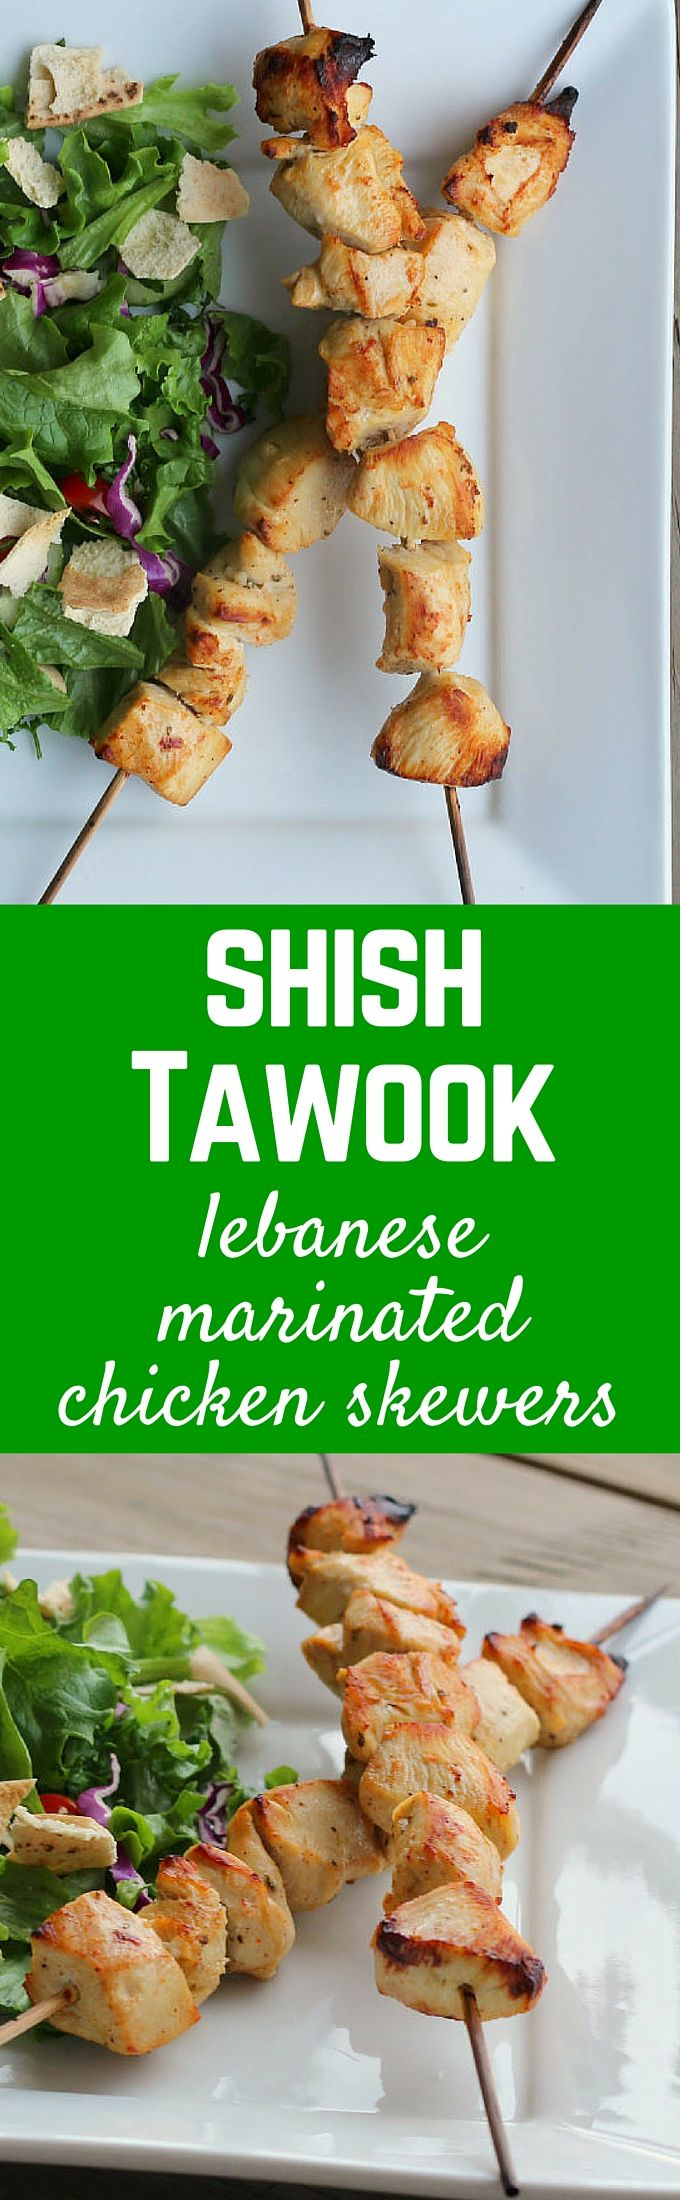 how to make lebanese chicken